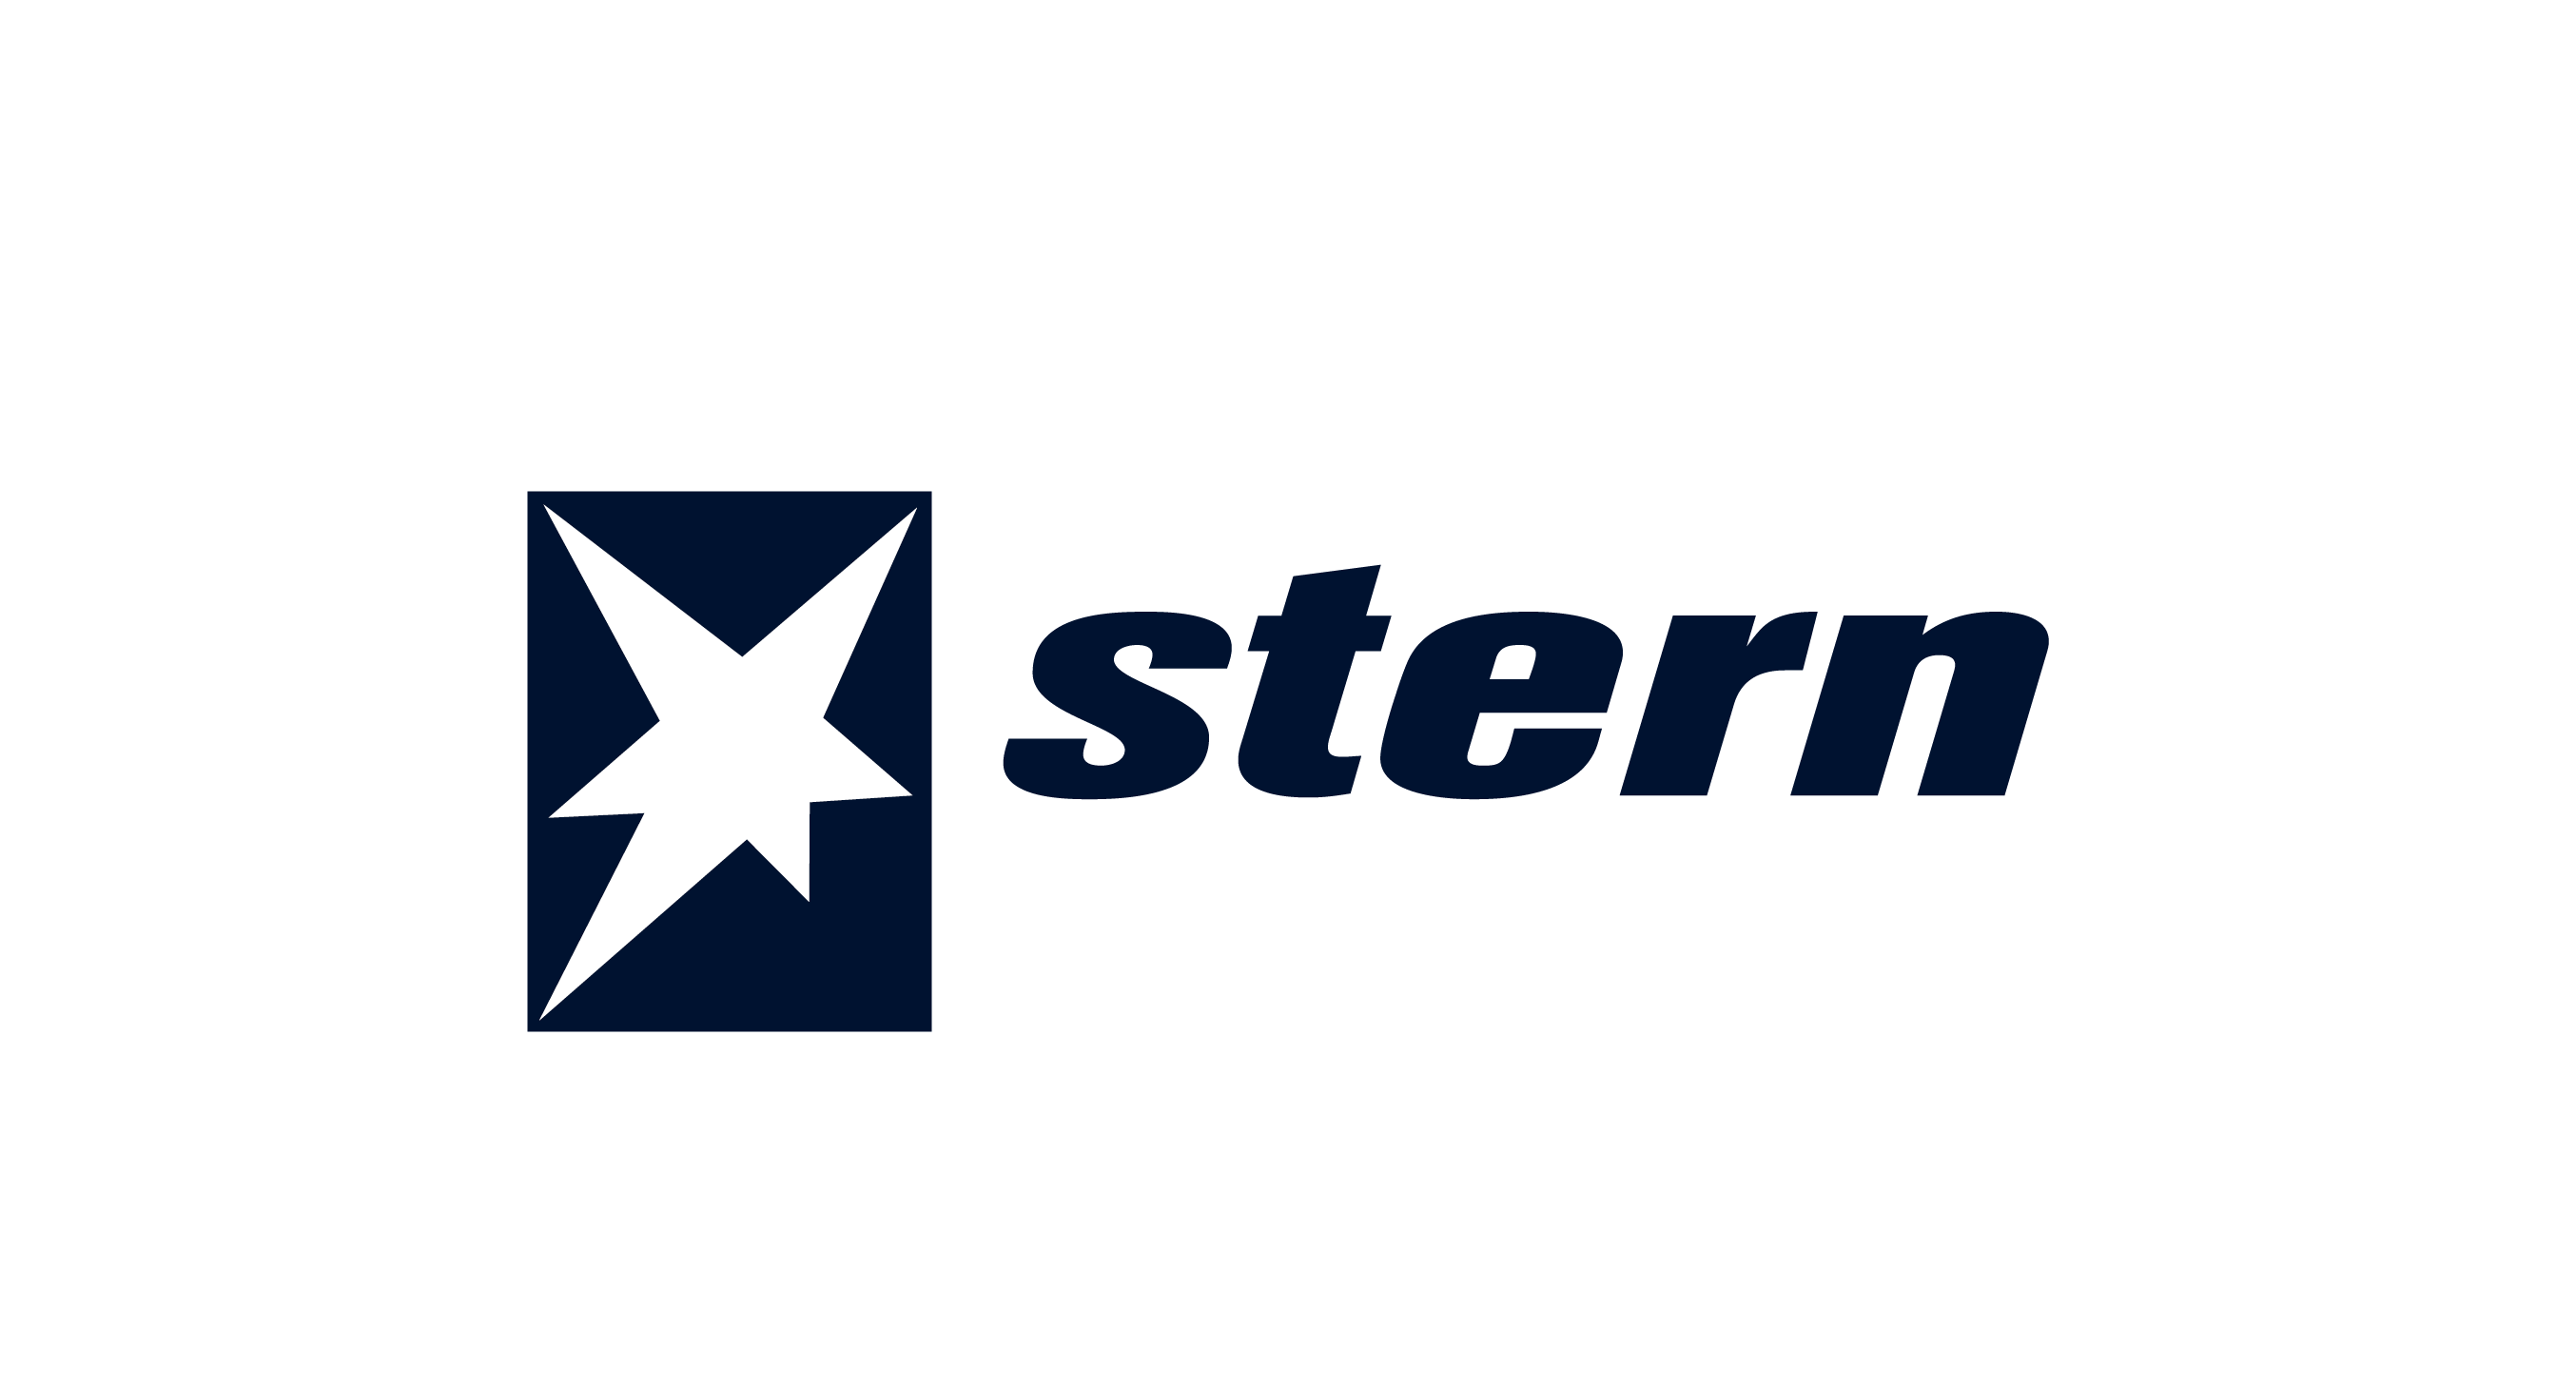 Stern logo in blue